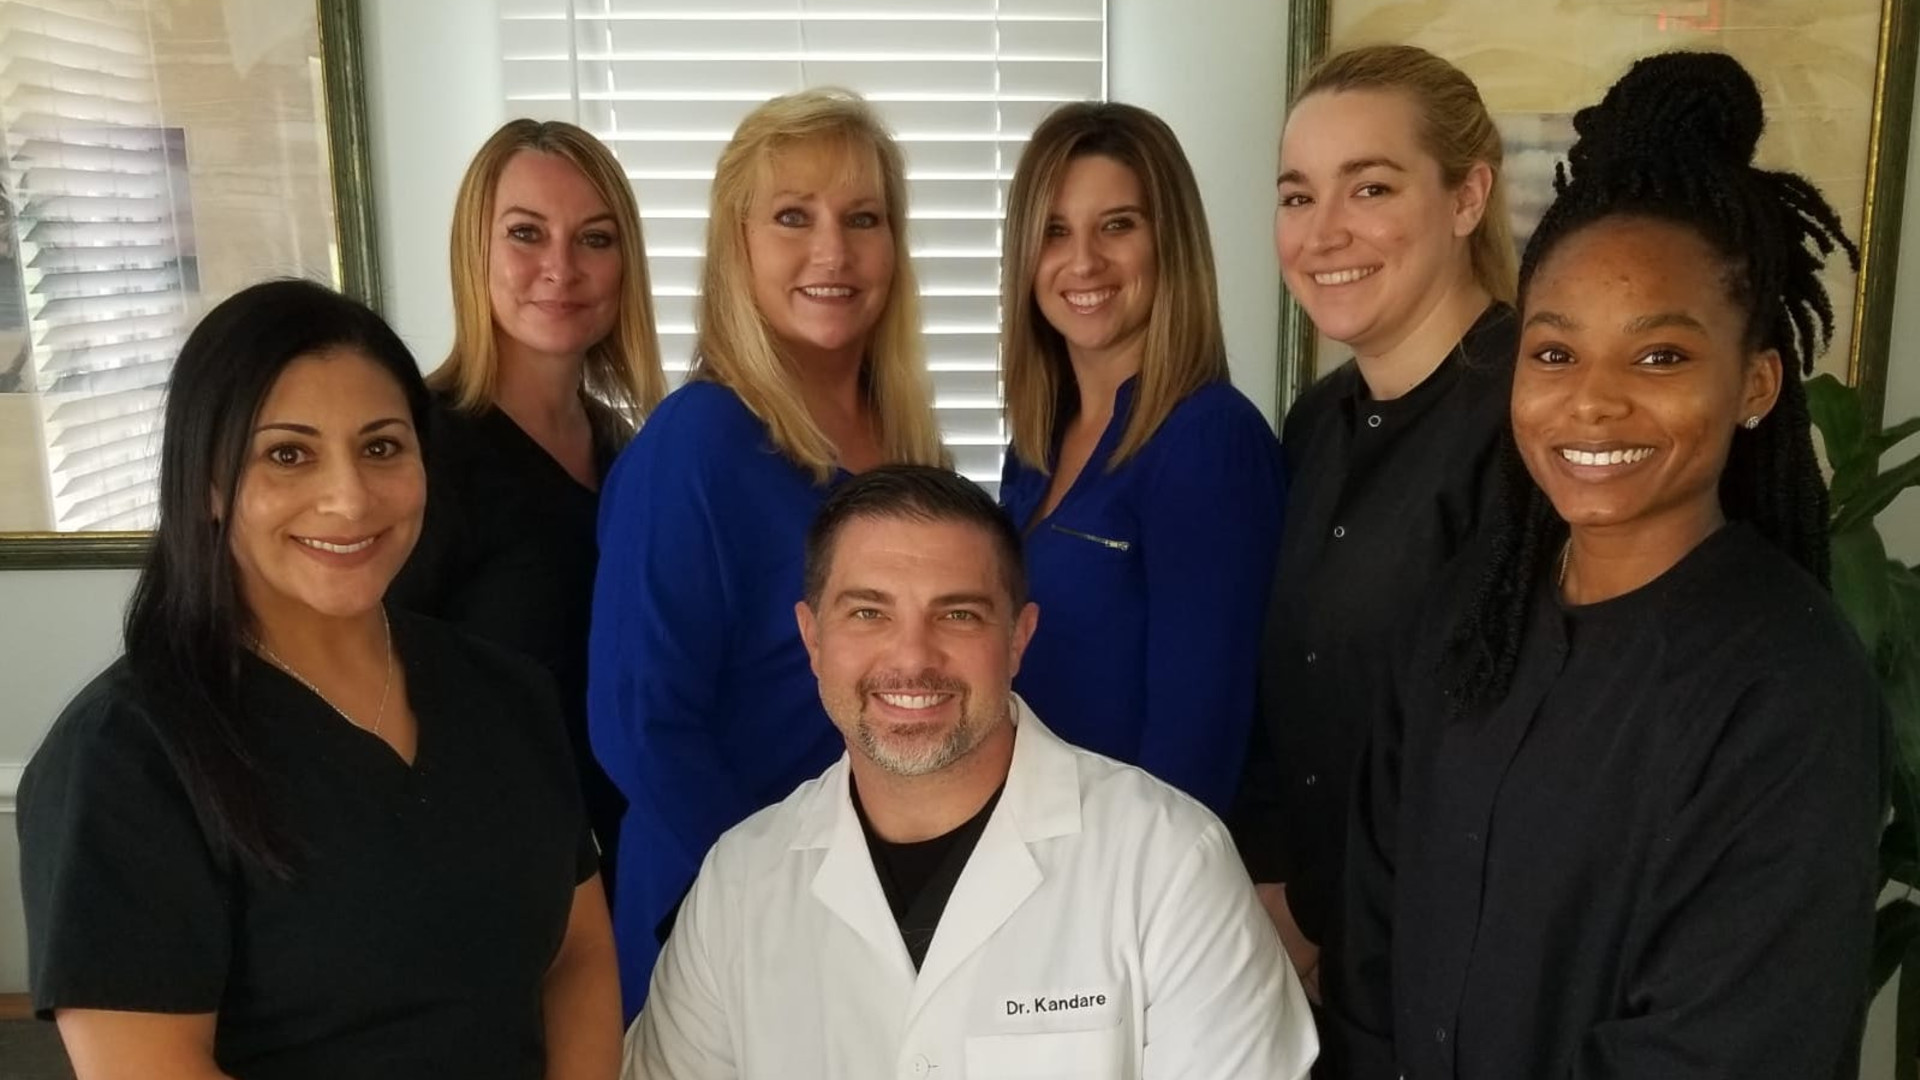 General Dentistry | Sedation Dentistry | Invisalign | Dental Implants